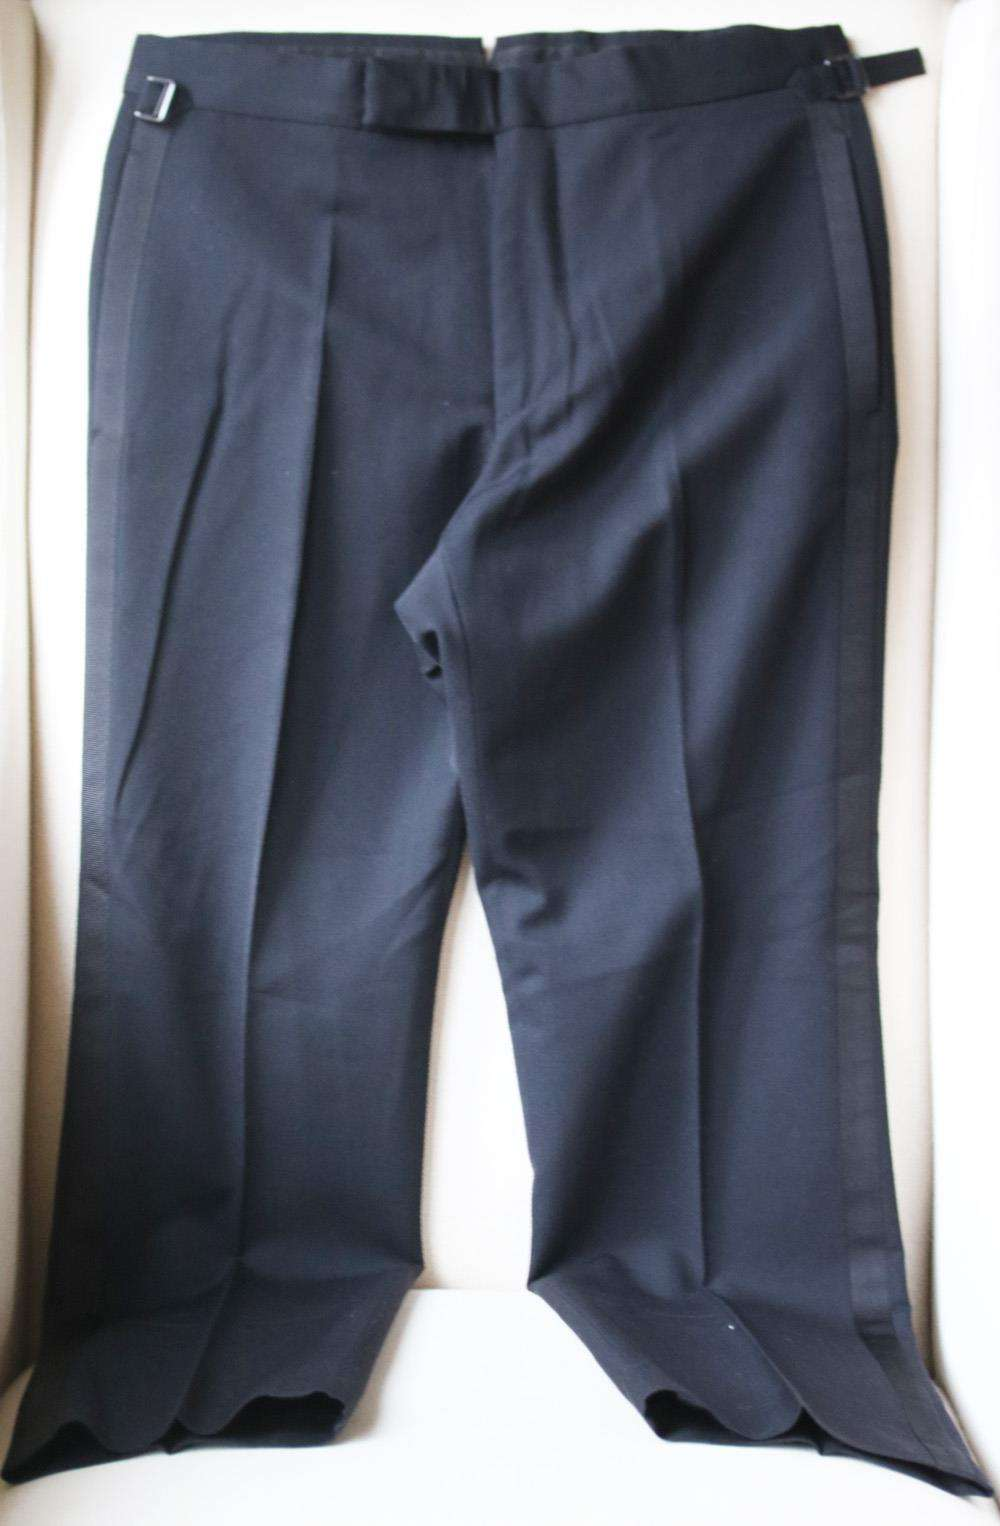 TOM FORD WOOL AND MOHAIR BLEND GRAIN DE POUDRE TROUSERS IT 46 UK/US 30